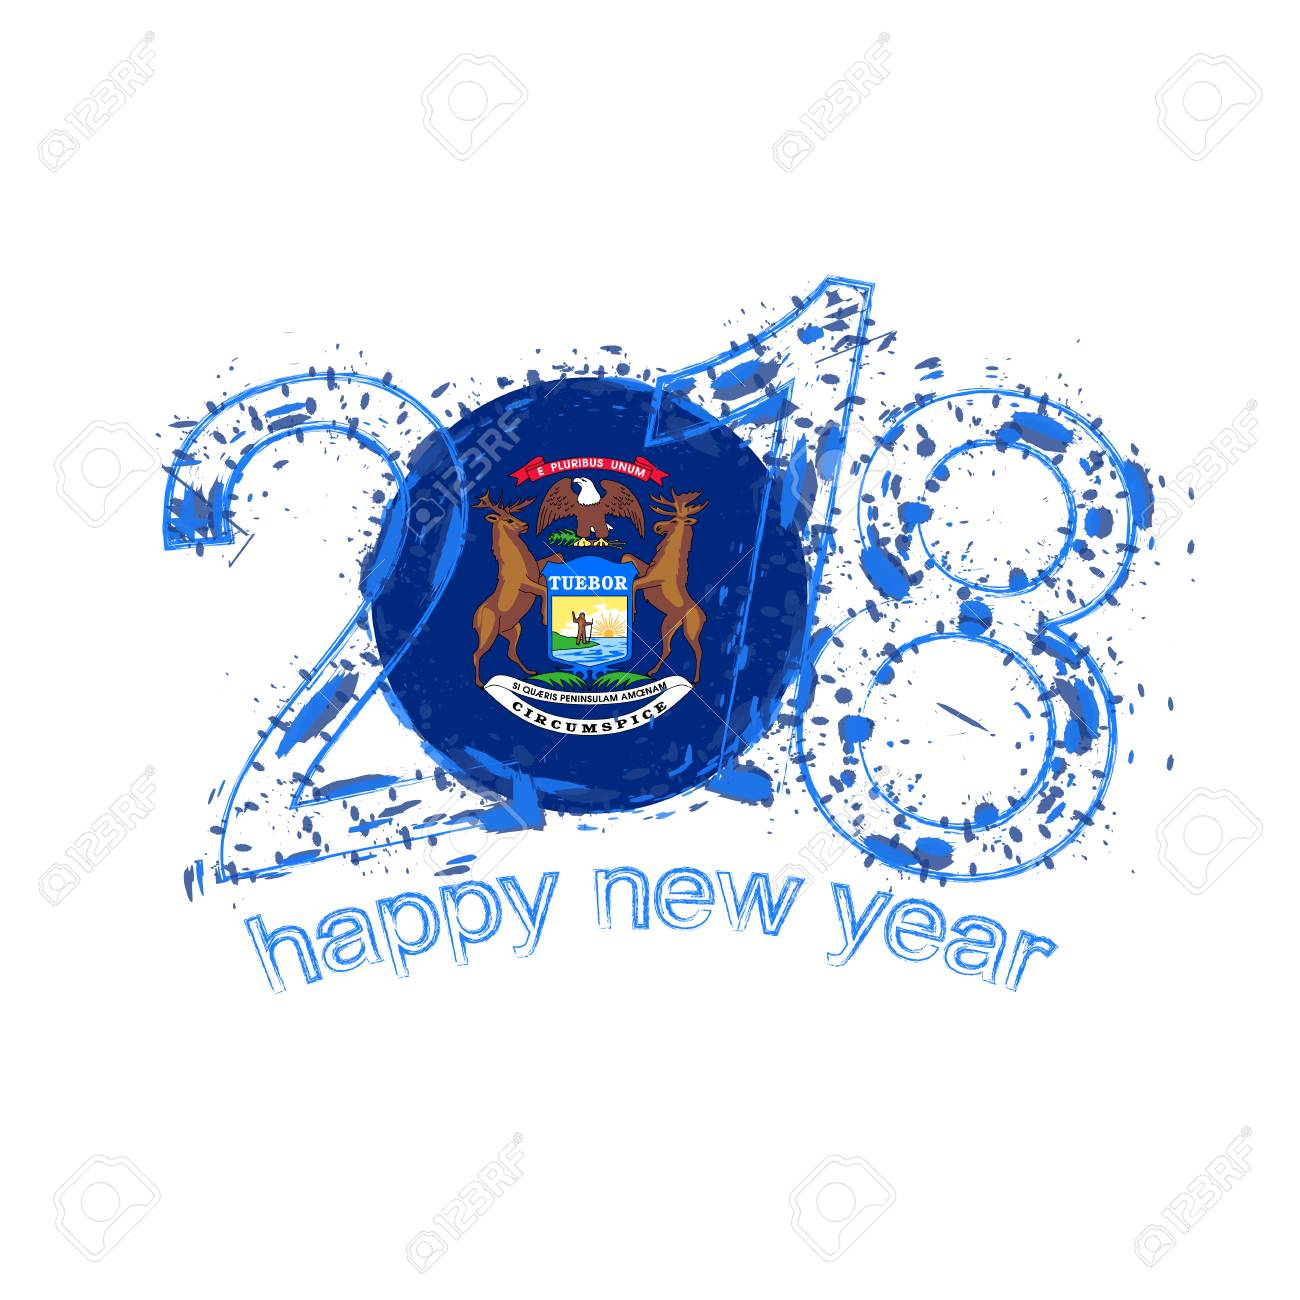 2018 happy new year michigan us state grunge vector template 2018 happy new year michigan us state grunge vector template for greeting card calendars 2018 m4hsunfo